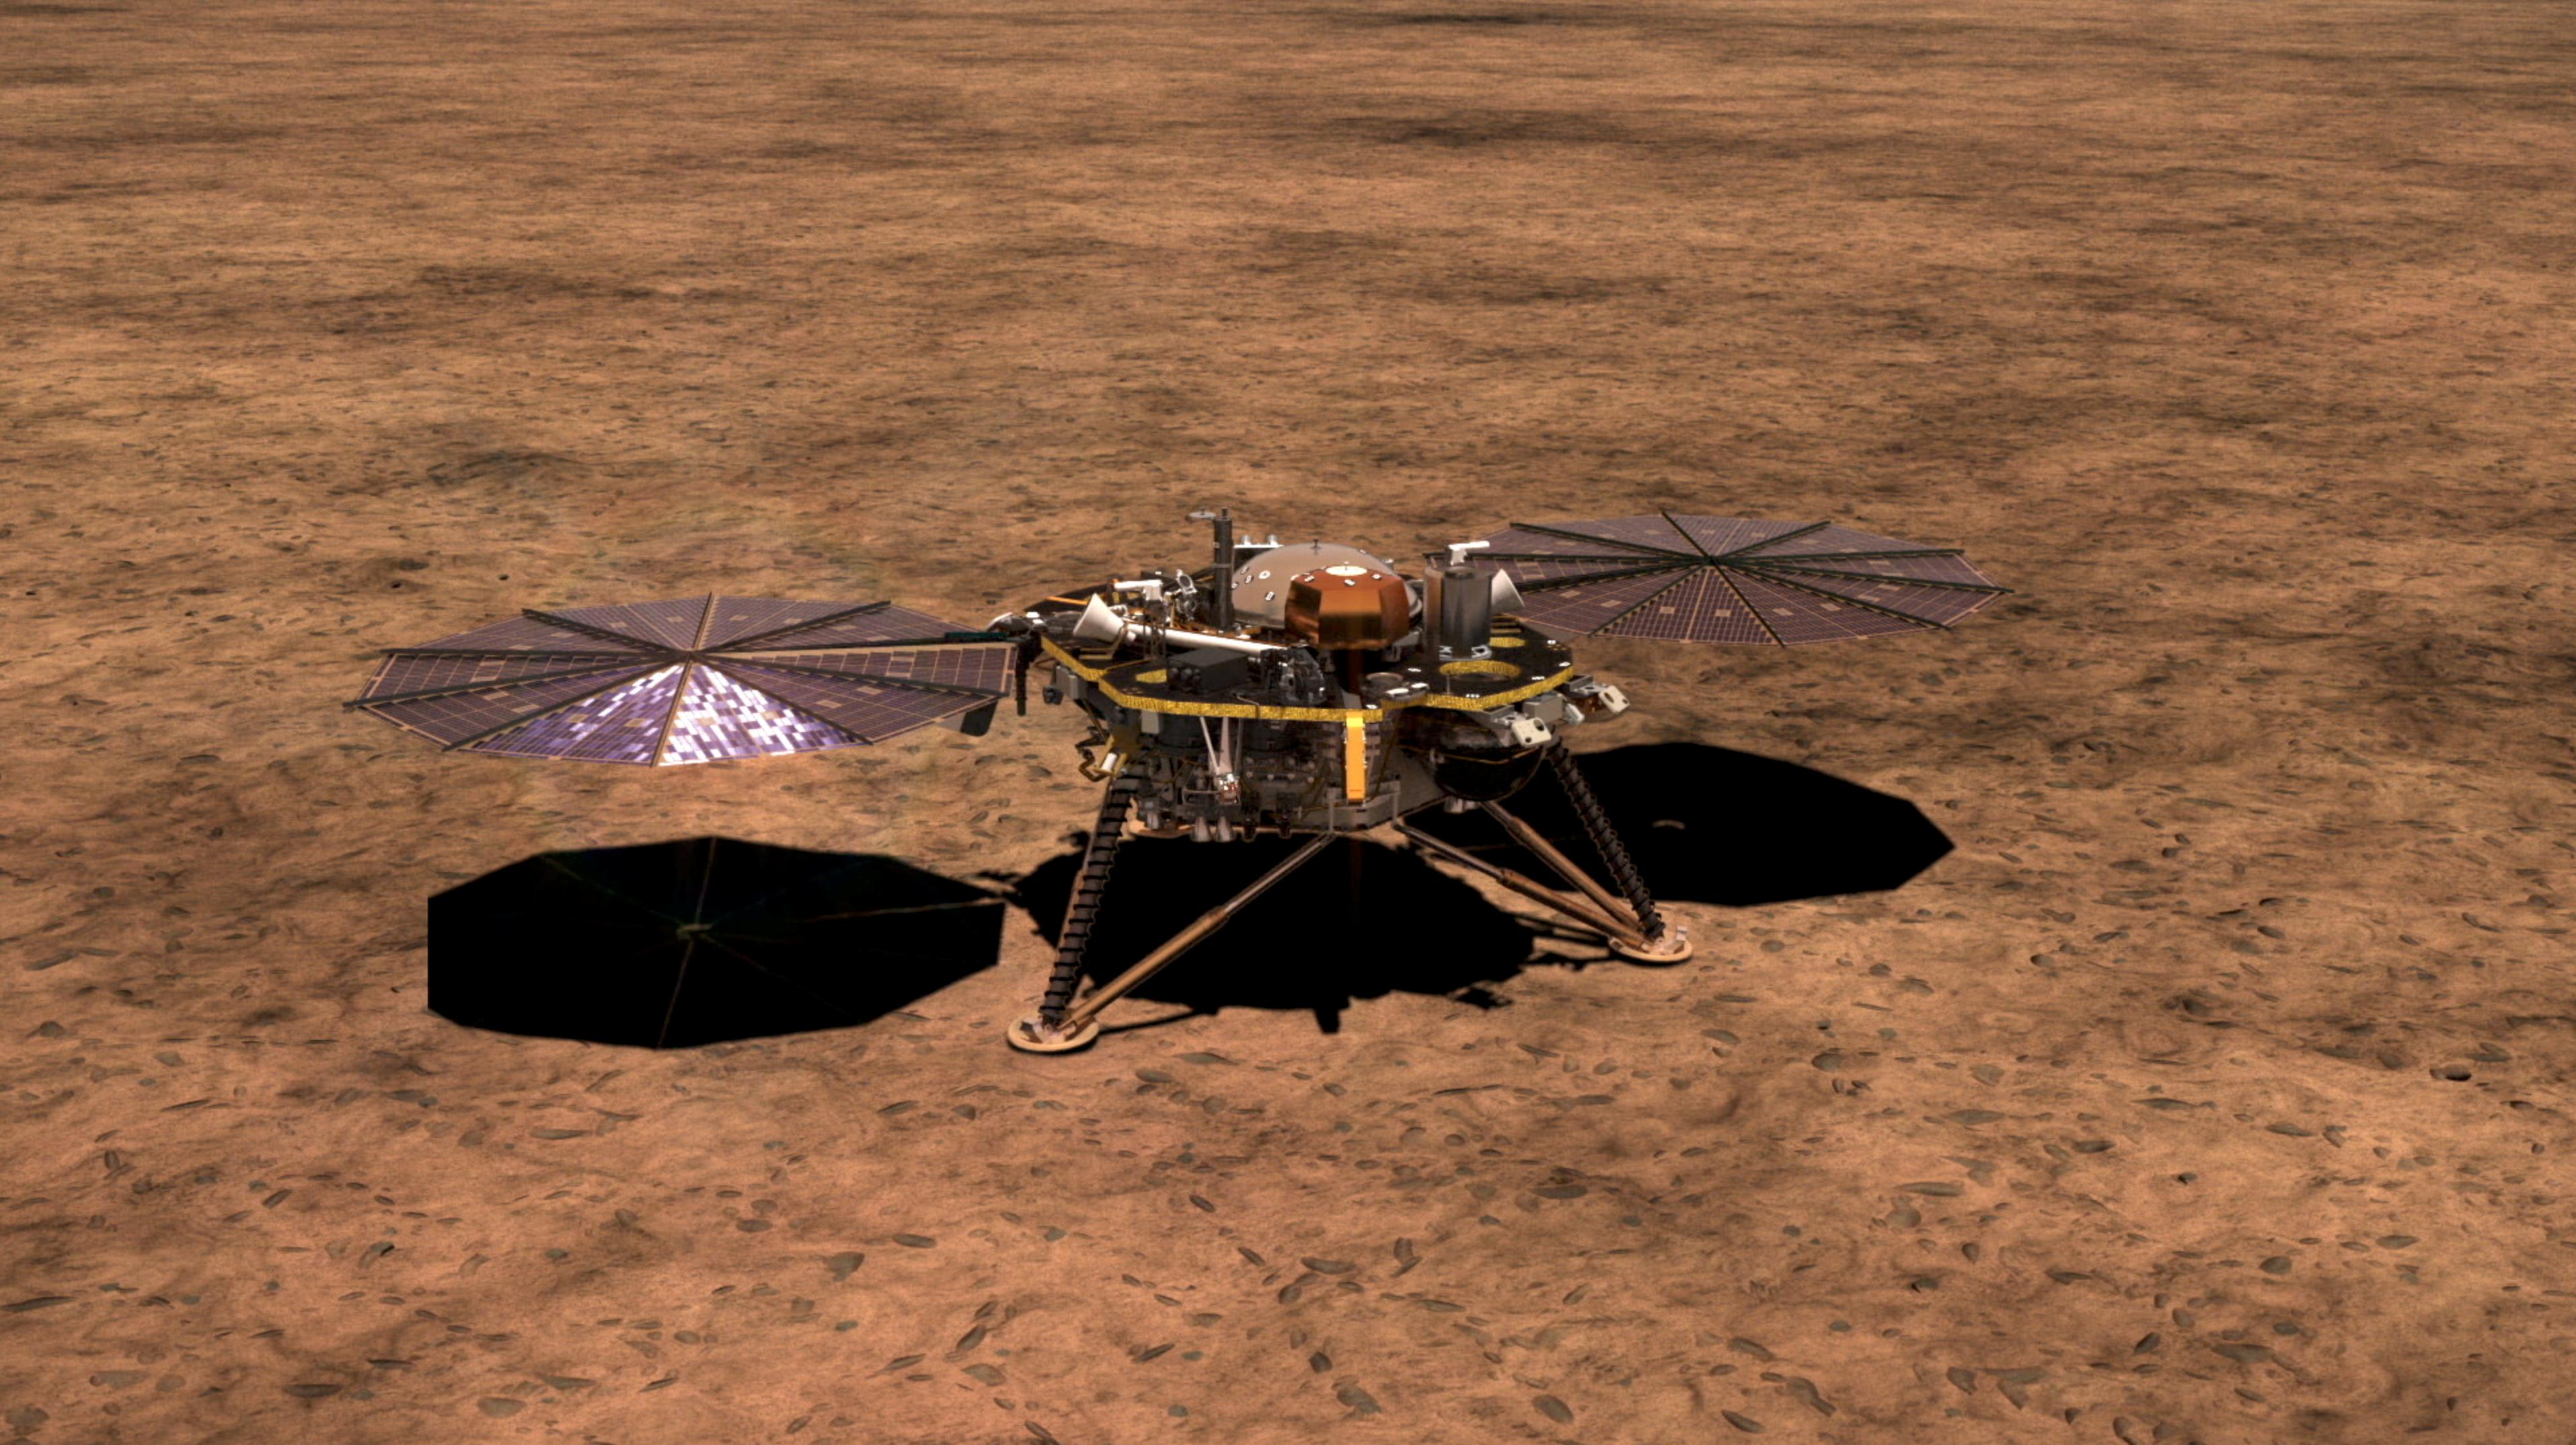 This artists illustration shows NASAs InSight lander on the surface of Mars, with its solar arrays deployed.